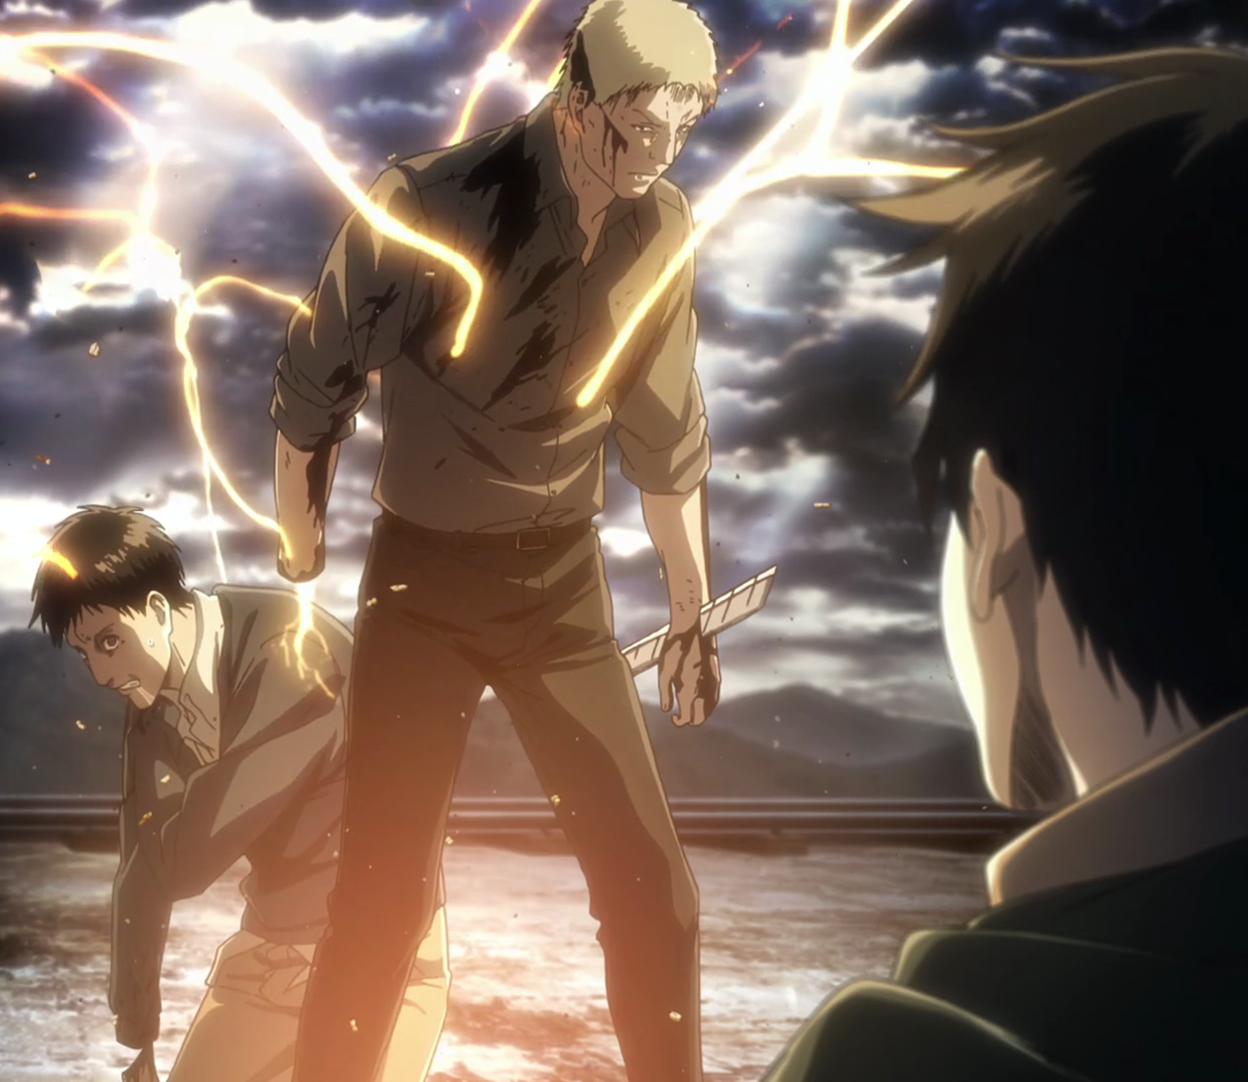 Attack on Titan Season 2 Episode 31: Warrior recap